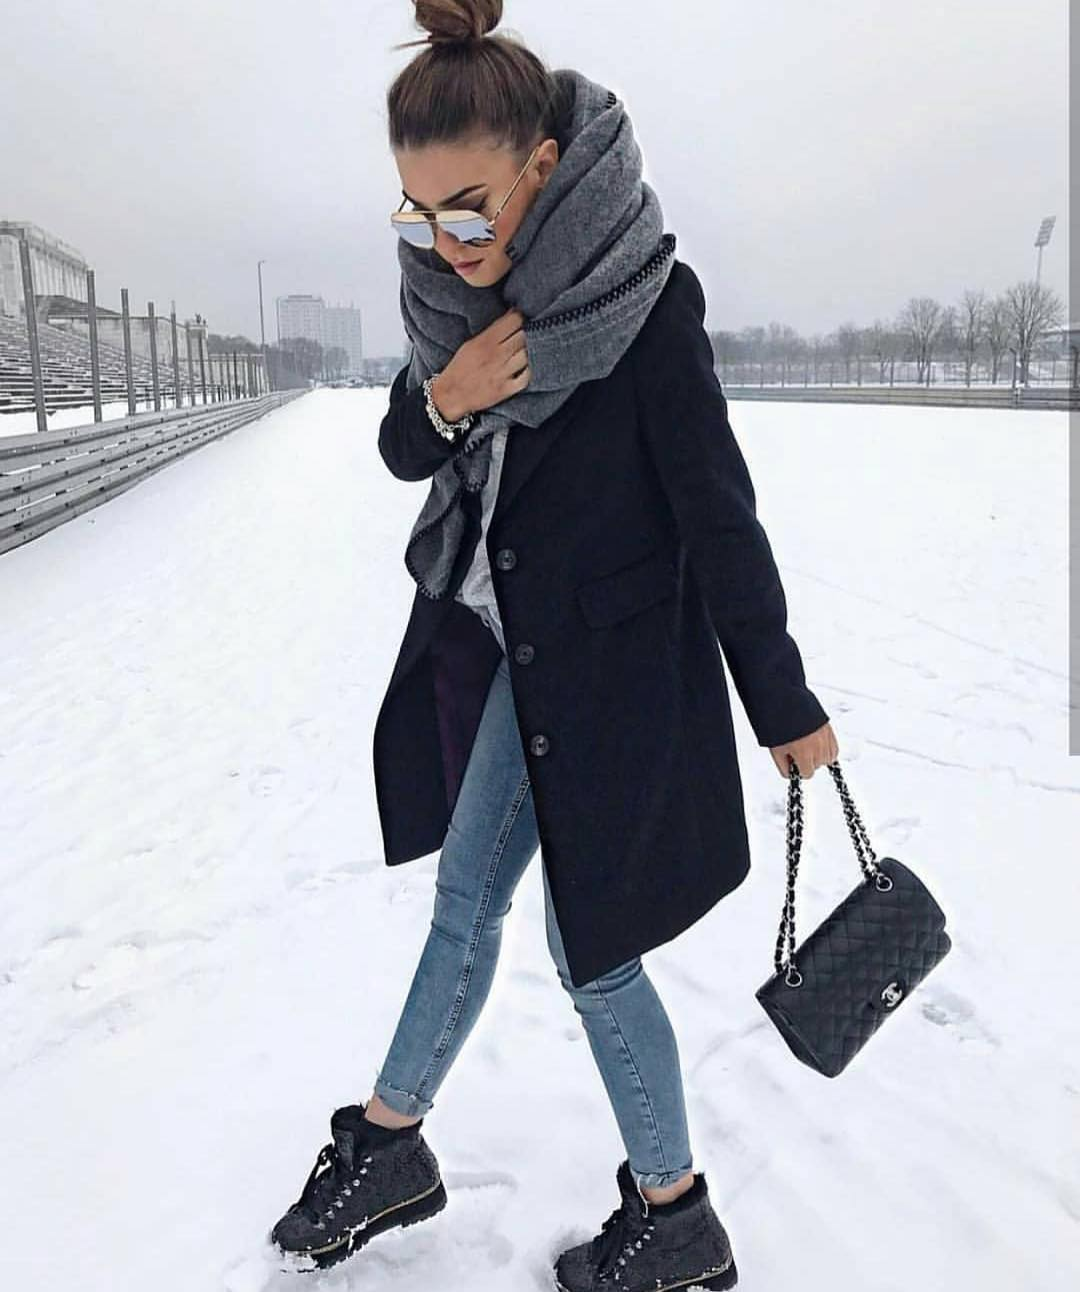 Black Coat And Timberlands For Winter Casual Days 2019